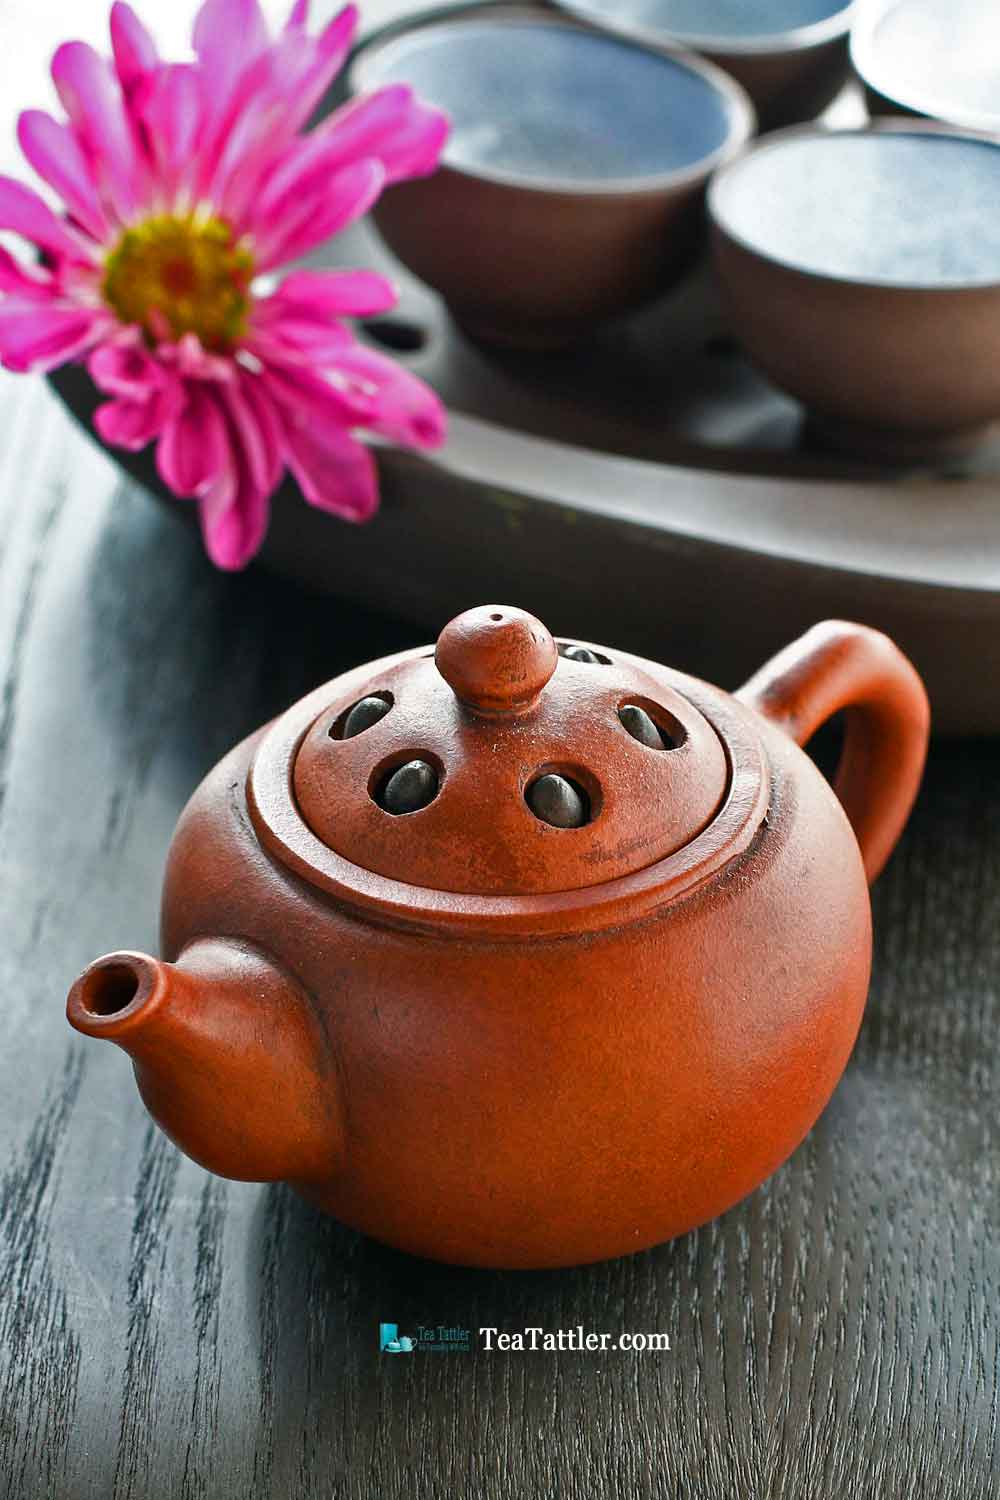 This Yixing Lotus Seed Teapot is made in the classic lotus seed design. The lid has six lotus seeds that move. Size is 4¾ inches by 2 inches. | TeaTattler.com #lotusseedteapot #yixingteapot